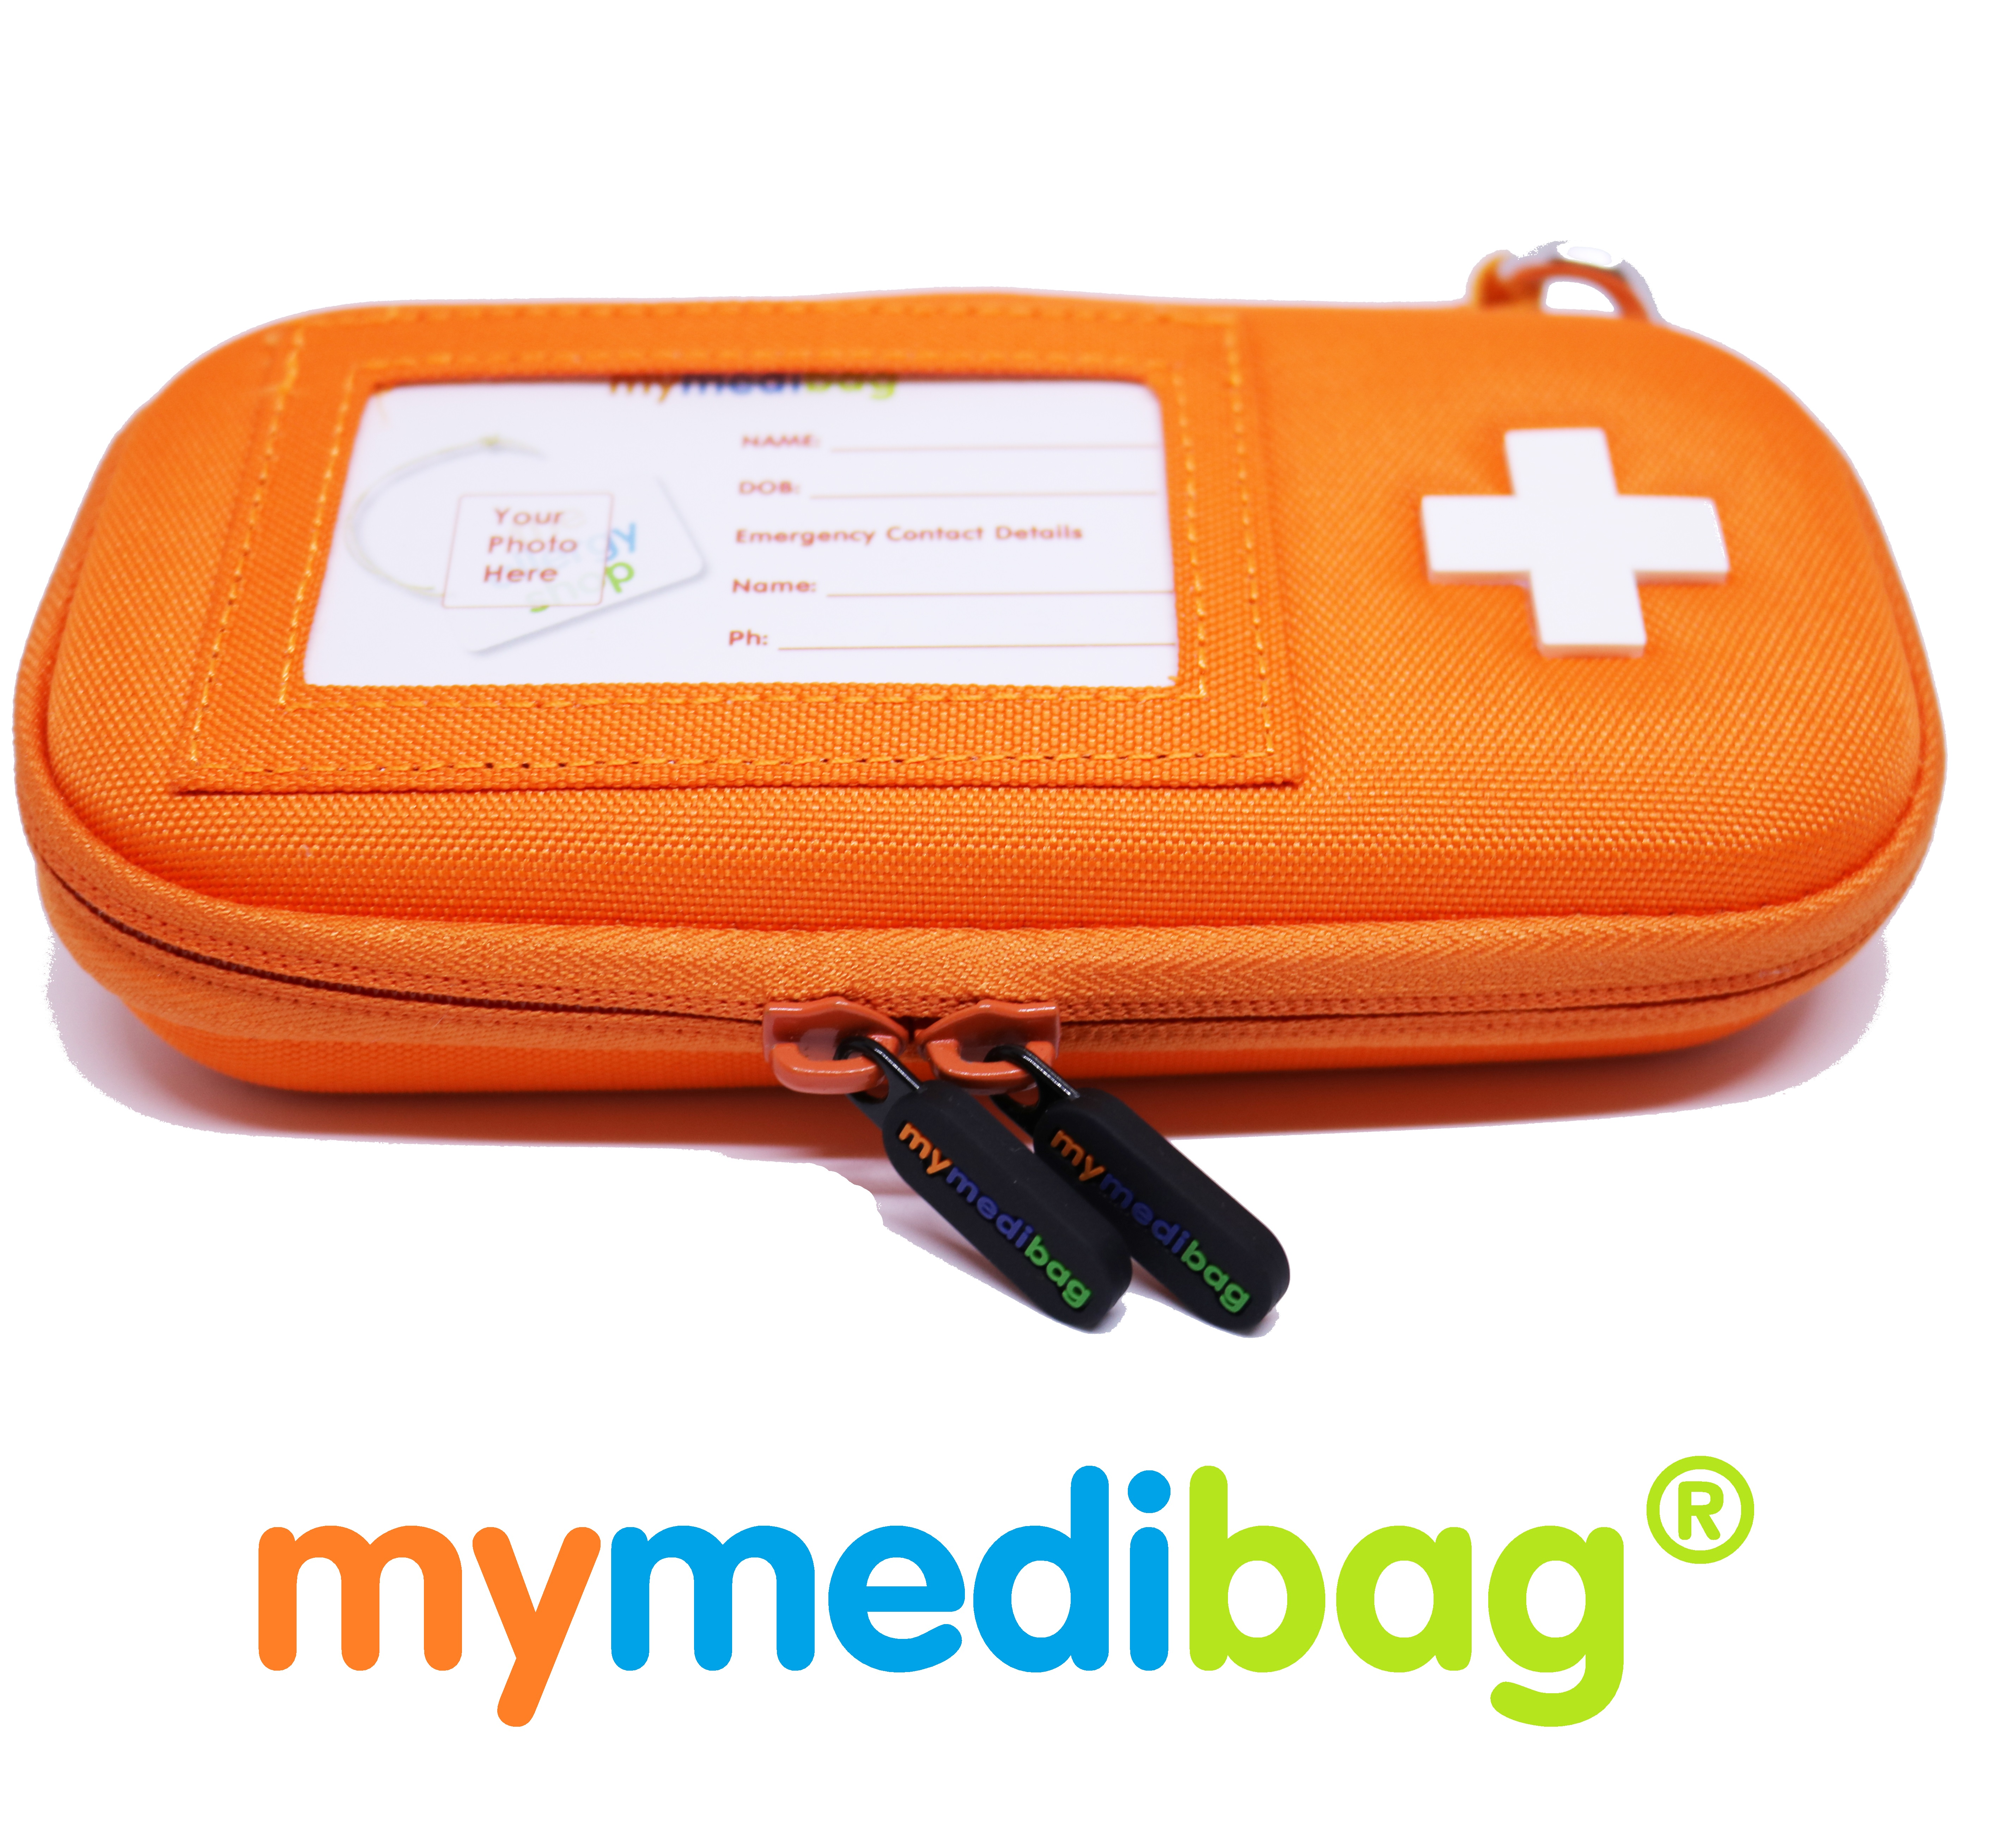 Mymedibag Double Epipen with Zippers